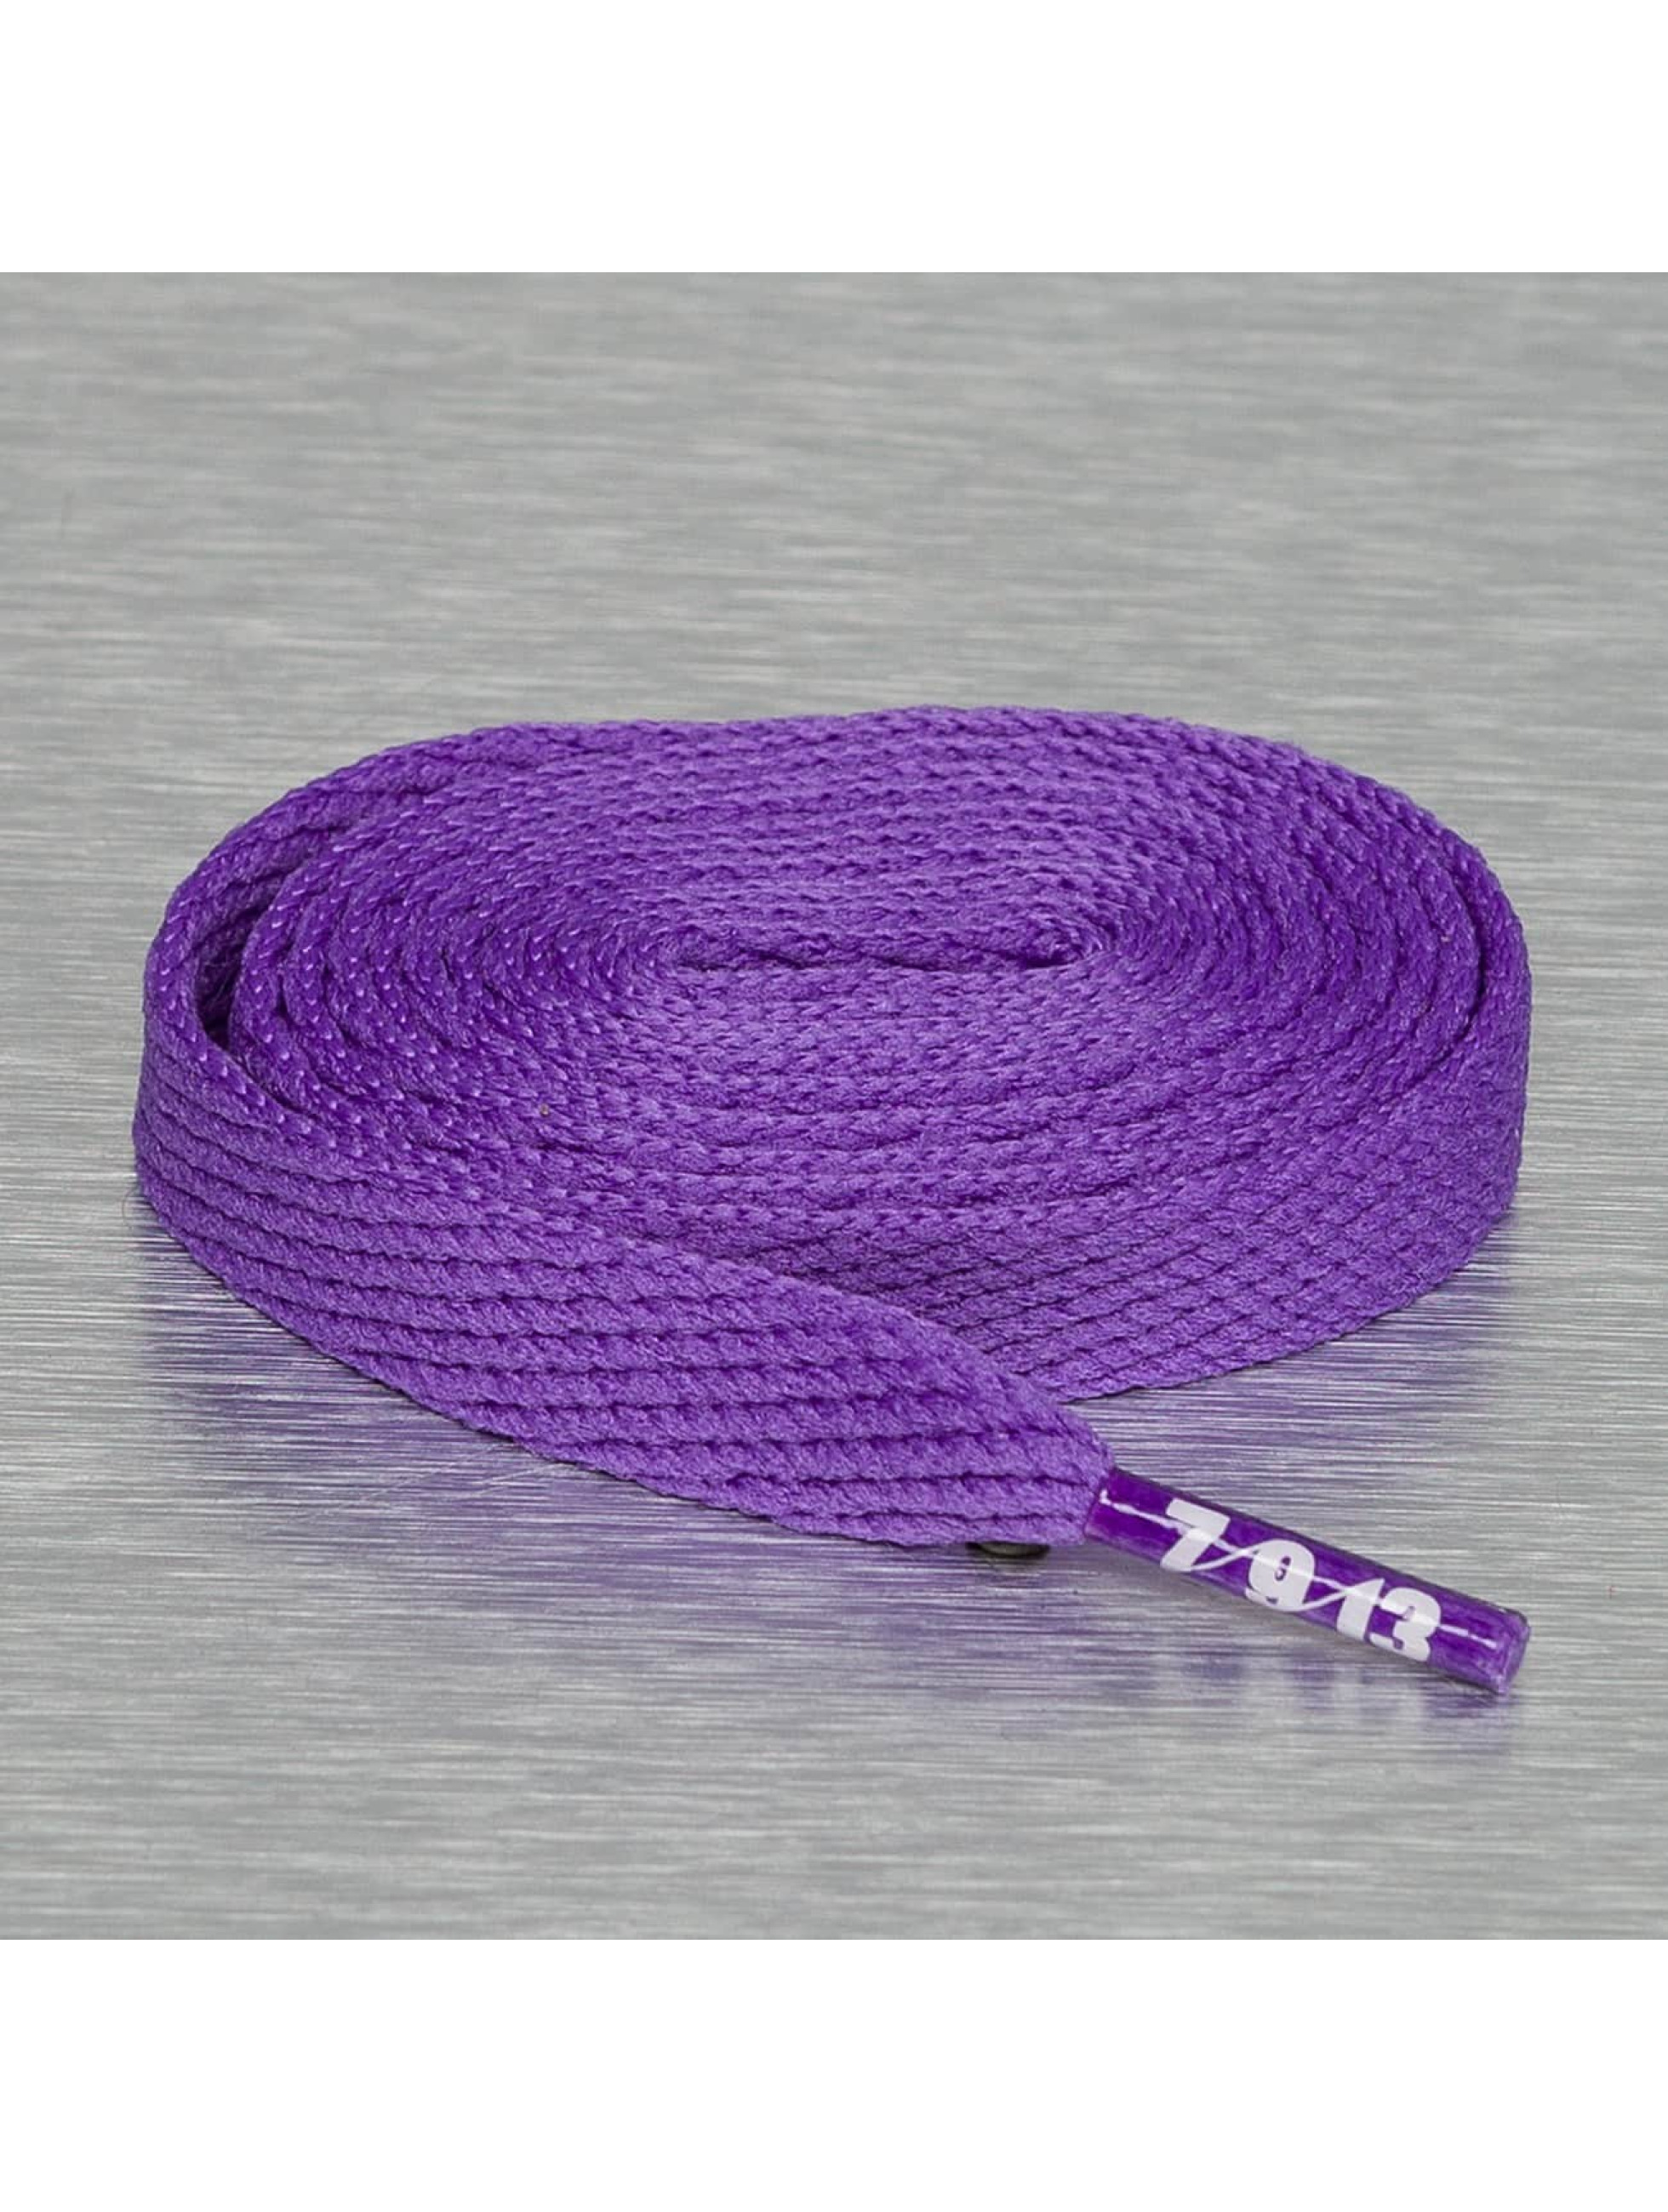 Seven Nine 13 Shoelace Hard Candy Flat purple